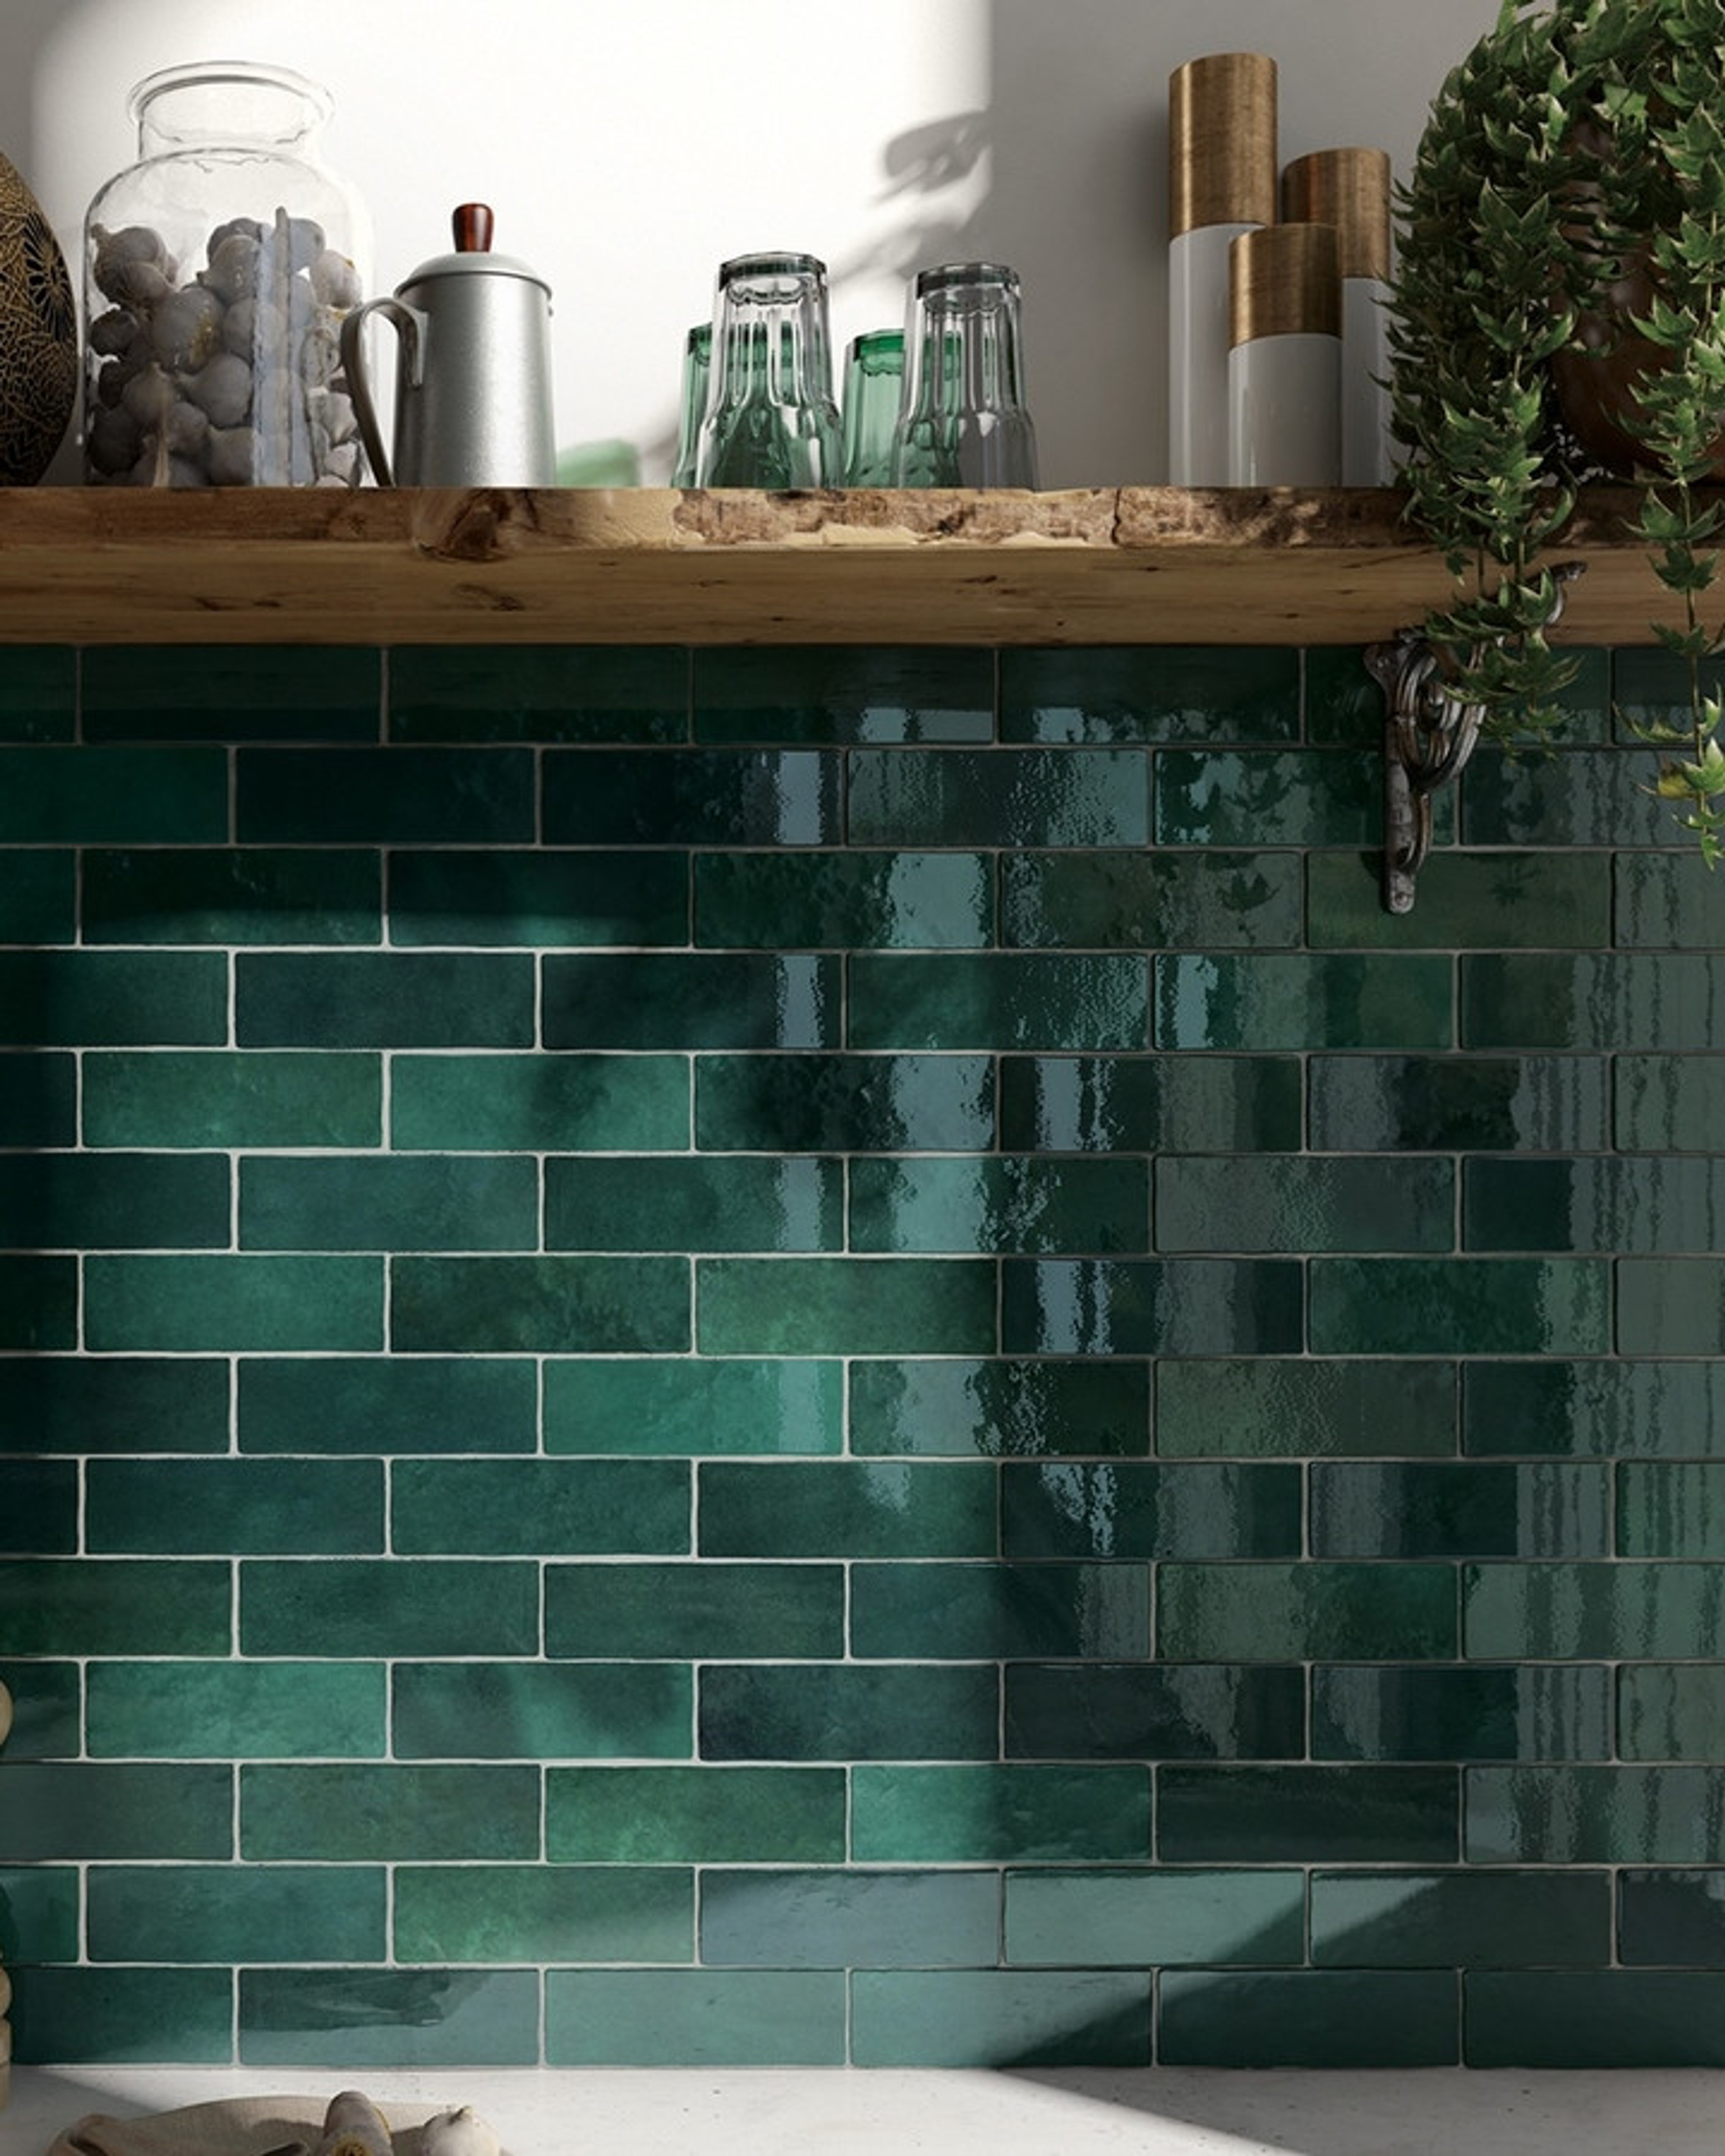 Wall Tile Artisan Moss Green Equipe Retro Tile 6,5x20 Cm